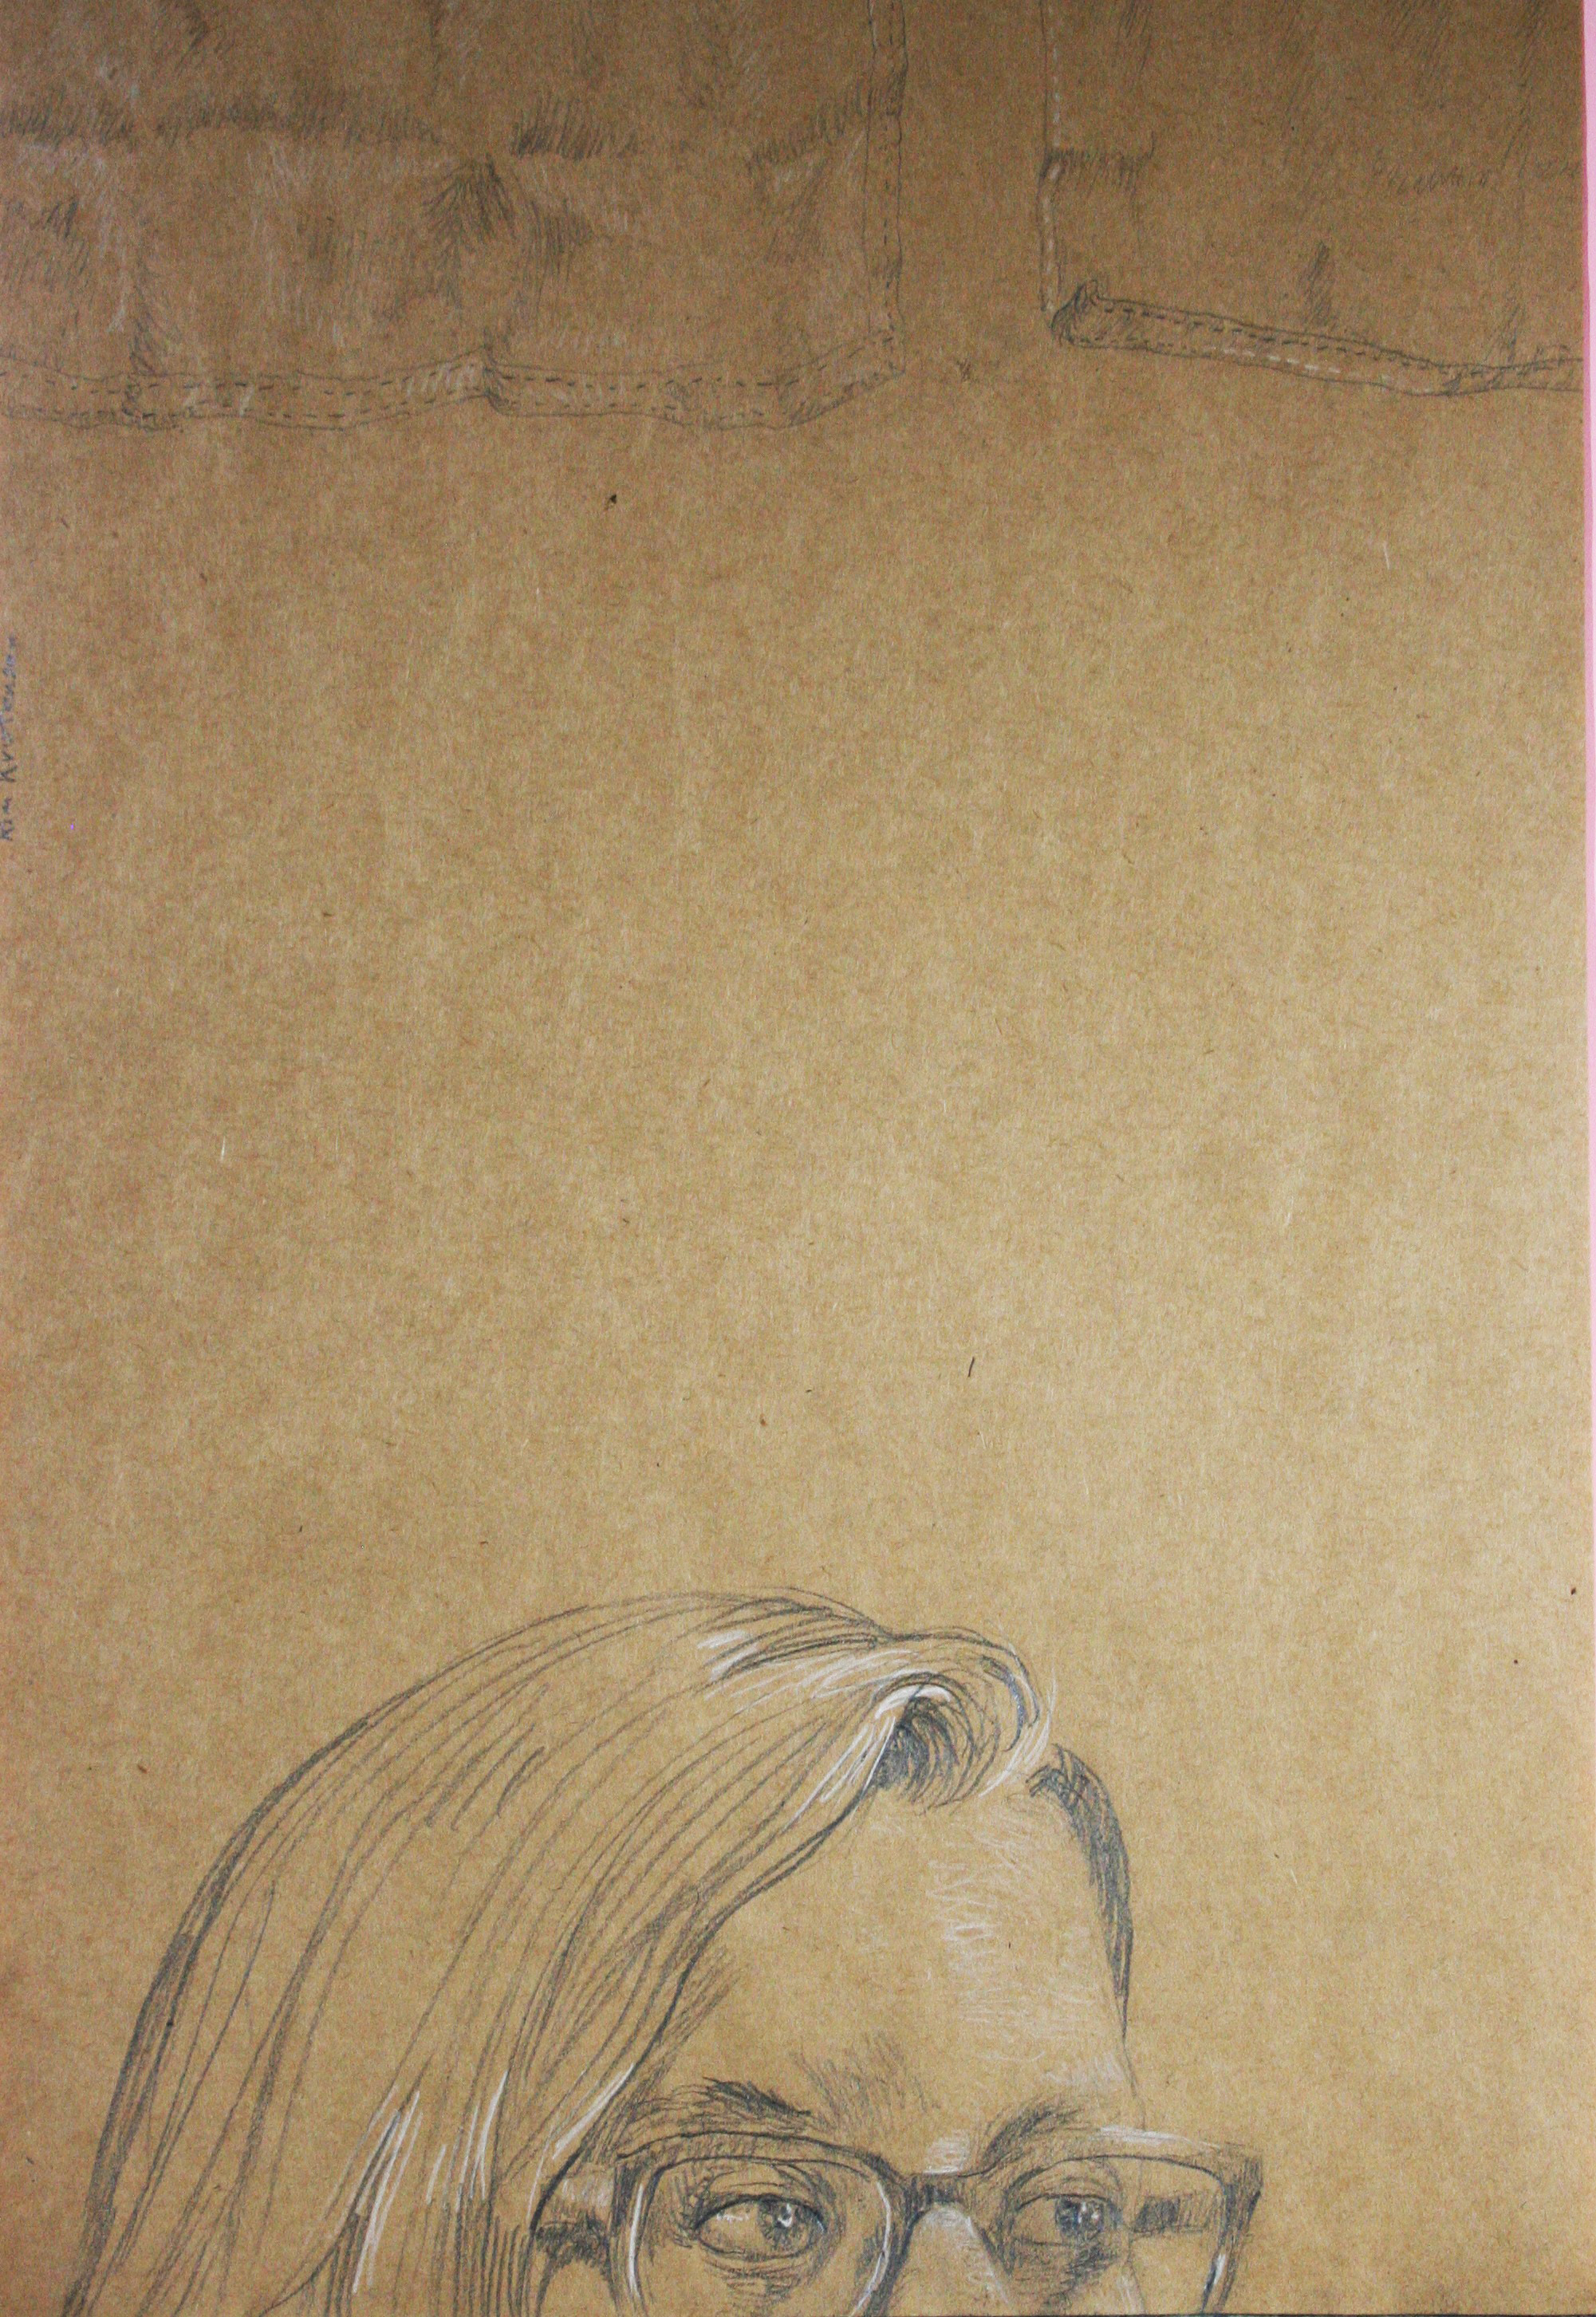 Kim Kristensen did this hour drawing of his daughter.